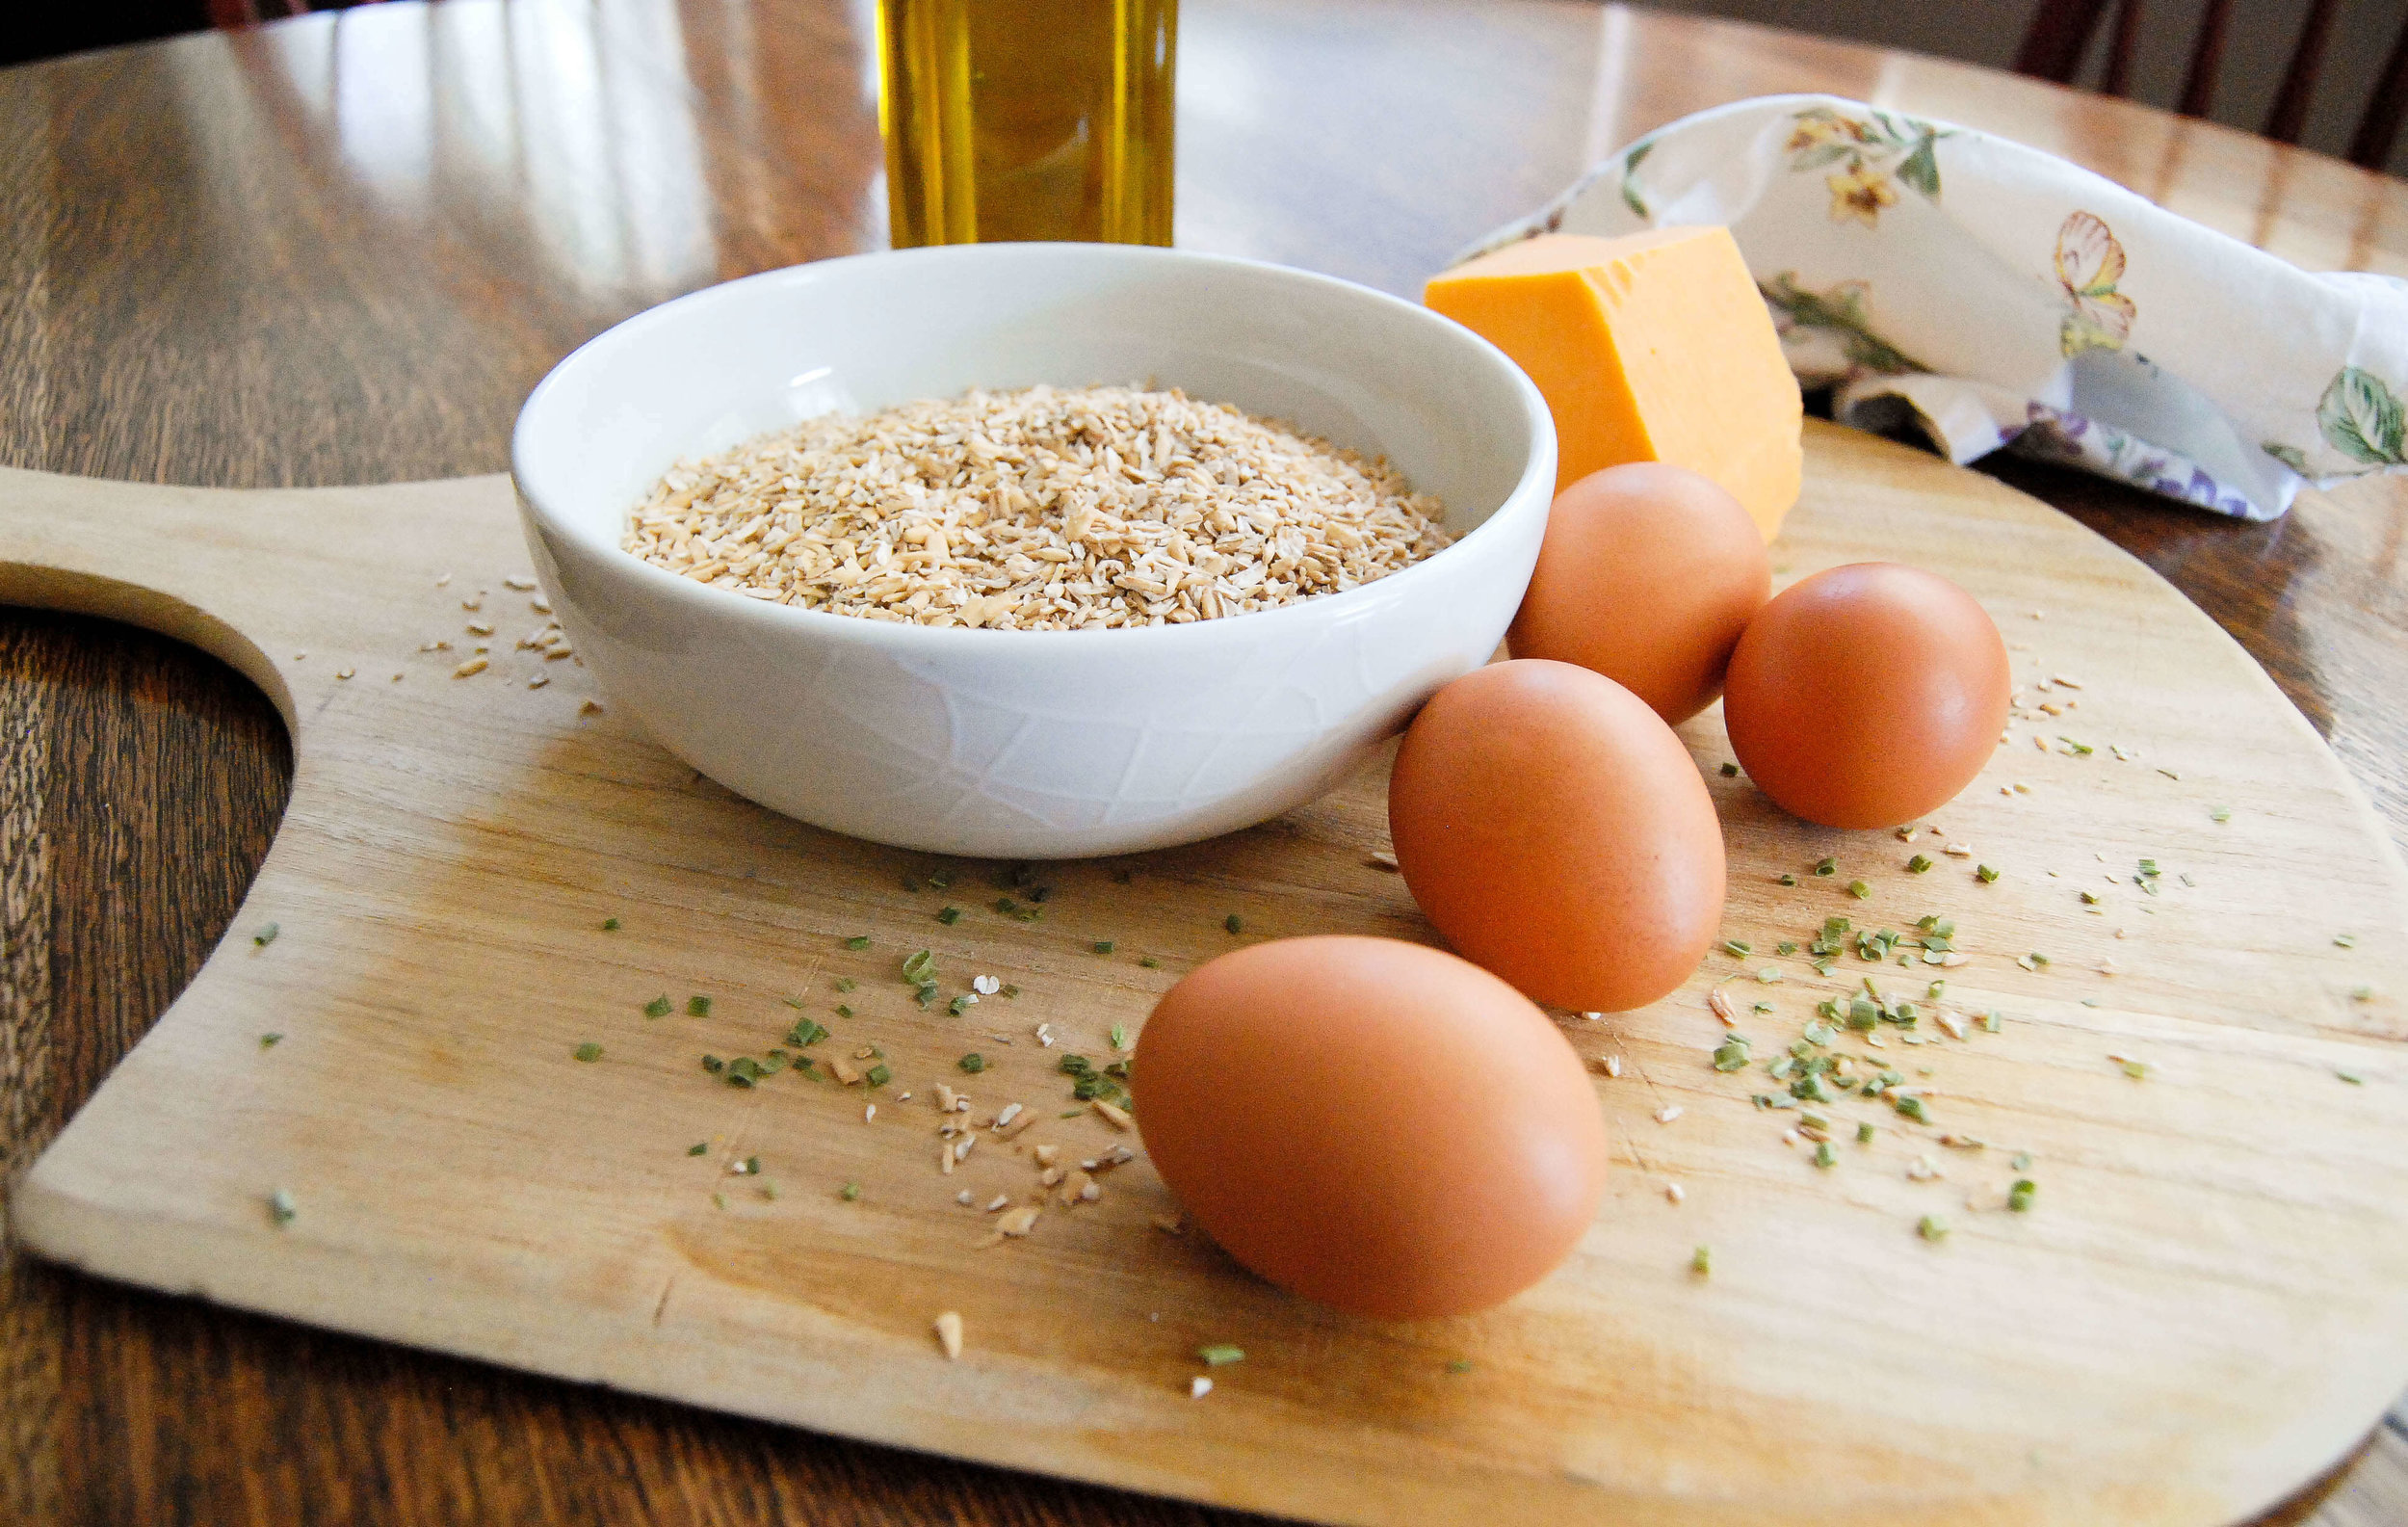 Oats And Eggs